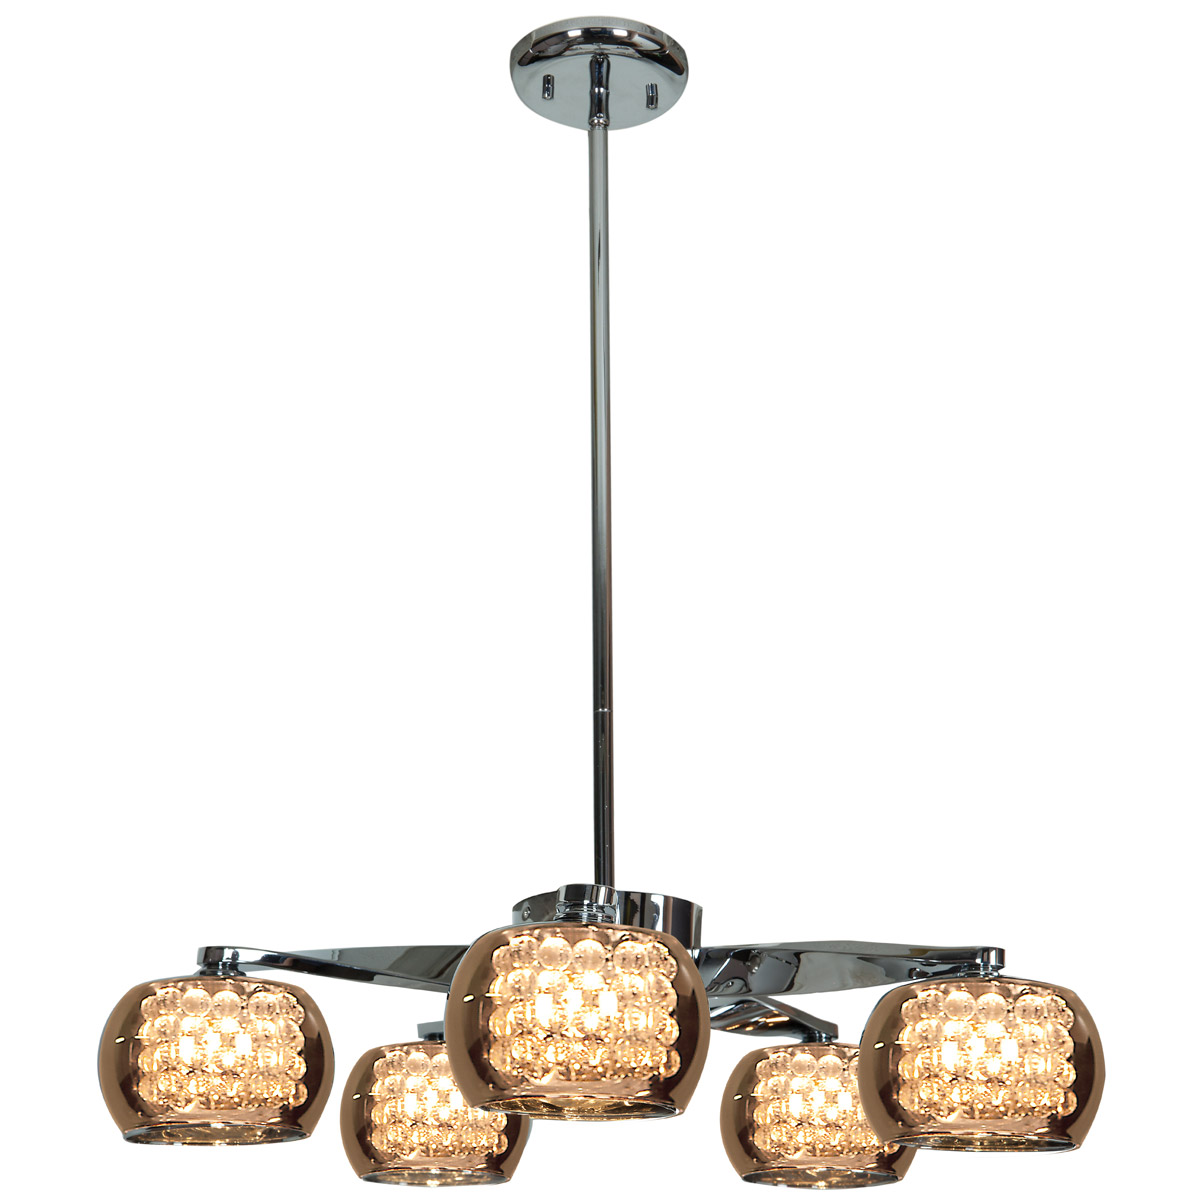 Access 52120-CH/MIR Glam - 5 Lights Chrome Finish Chandelier Ceiling Light